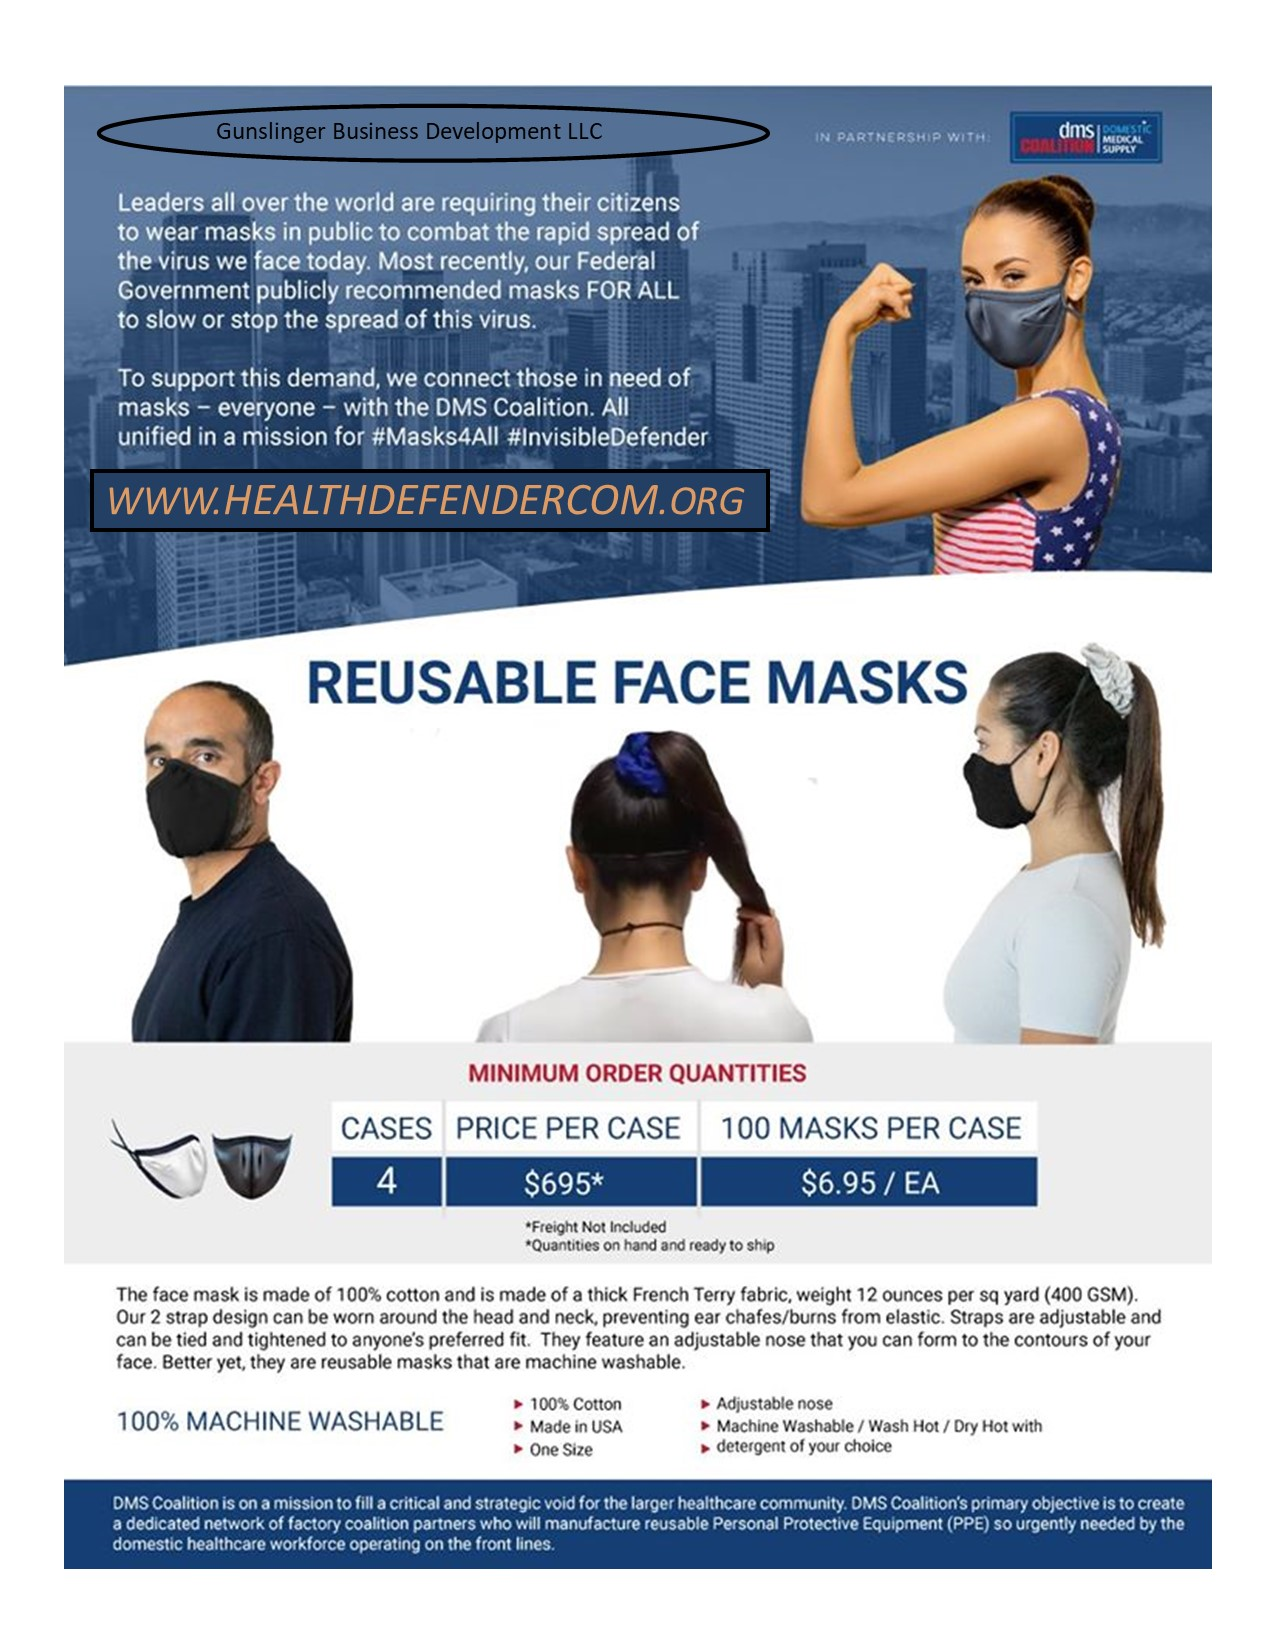 Gunslinger Business Development LLC Is Partnering With DMS To Create Reusable Face Masks In War Against Covid-19